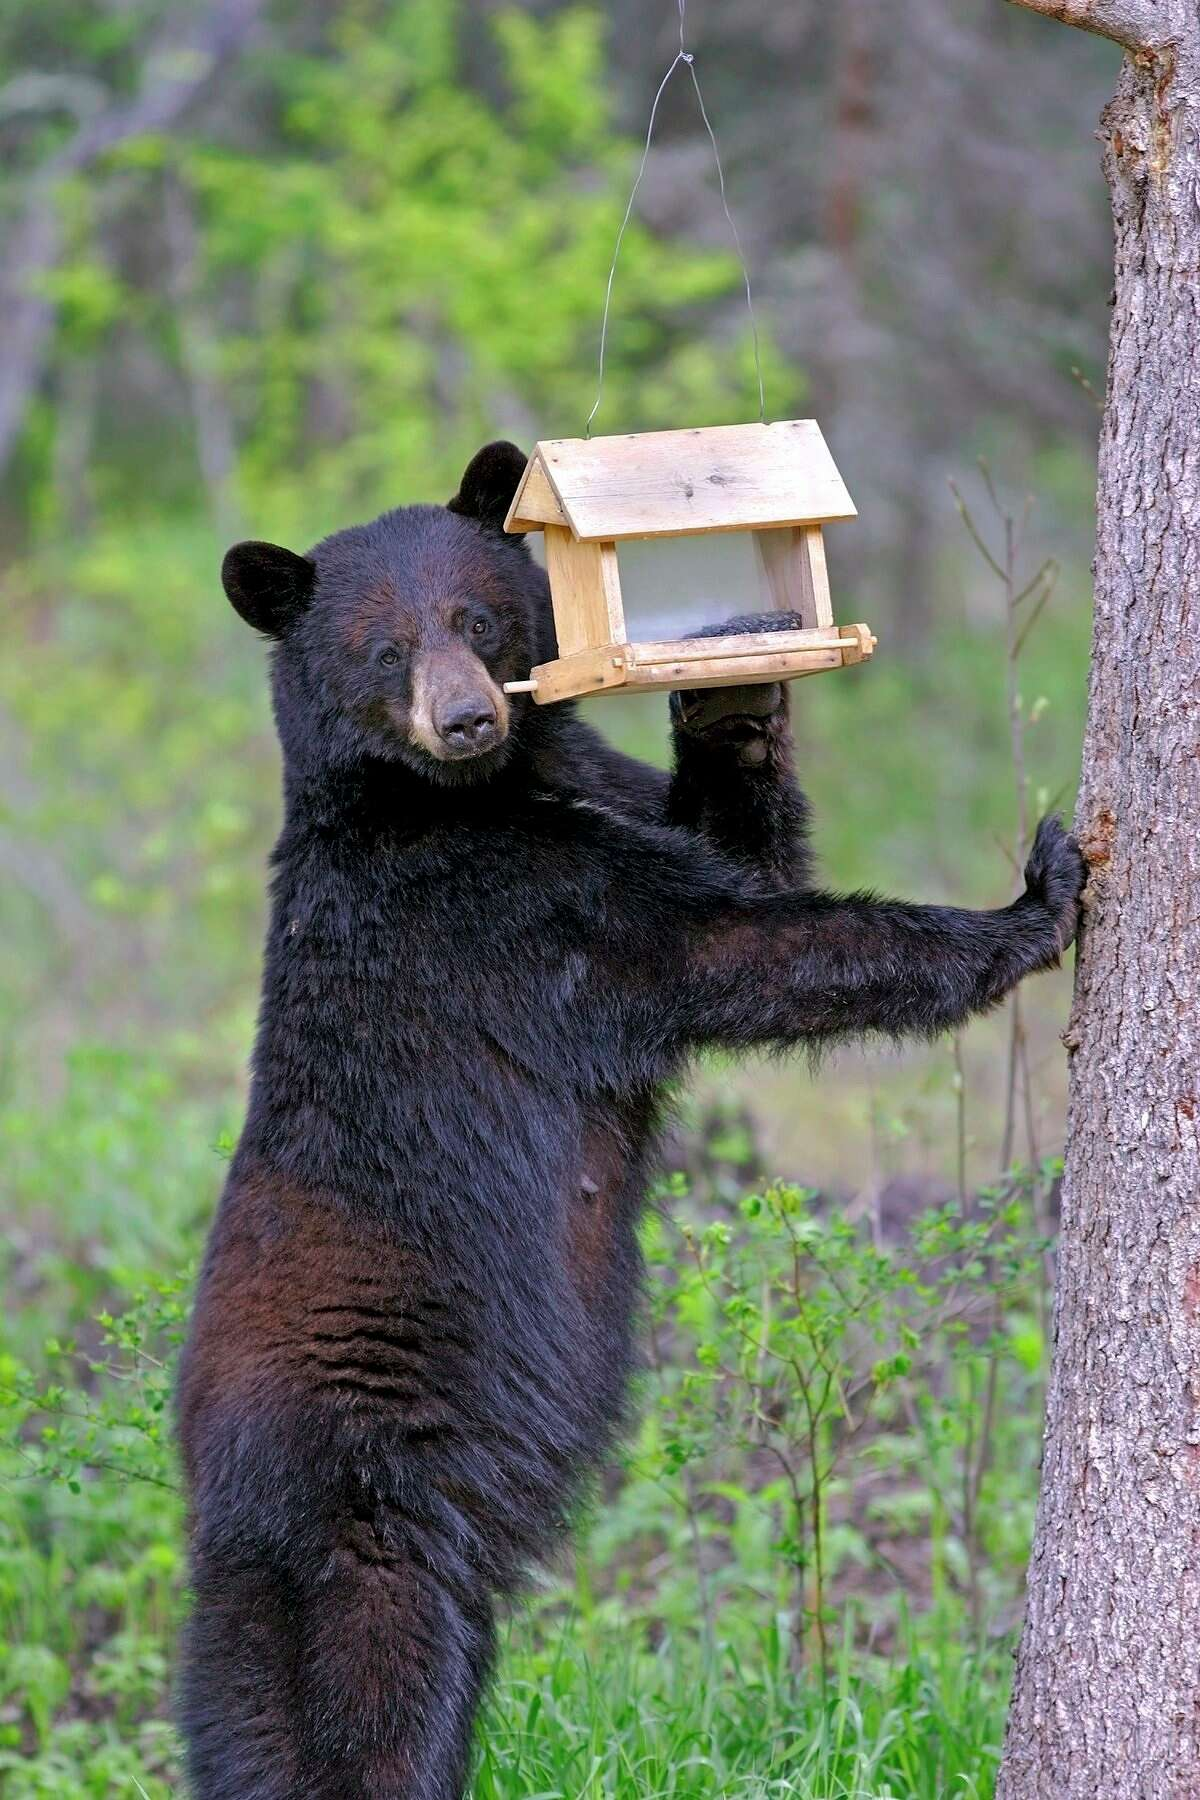 Remove food sources like bird feeders to avoid conflicts with black bears. (Courtesy/Michigan DNR)